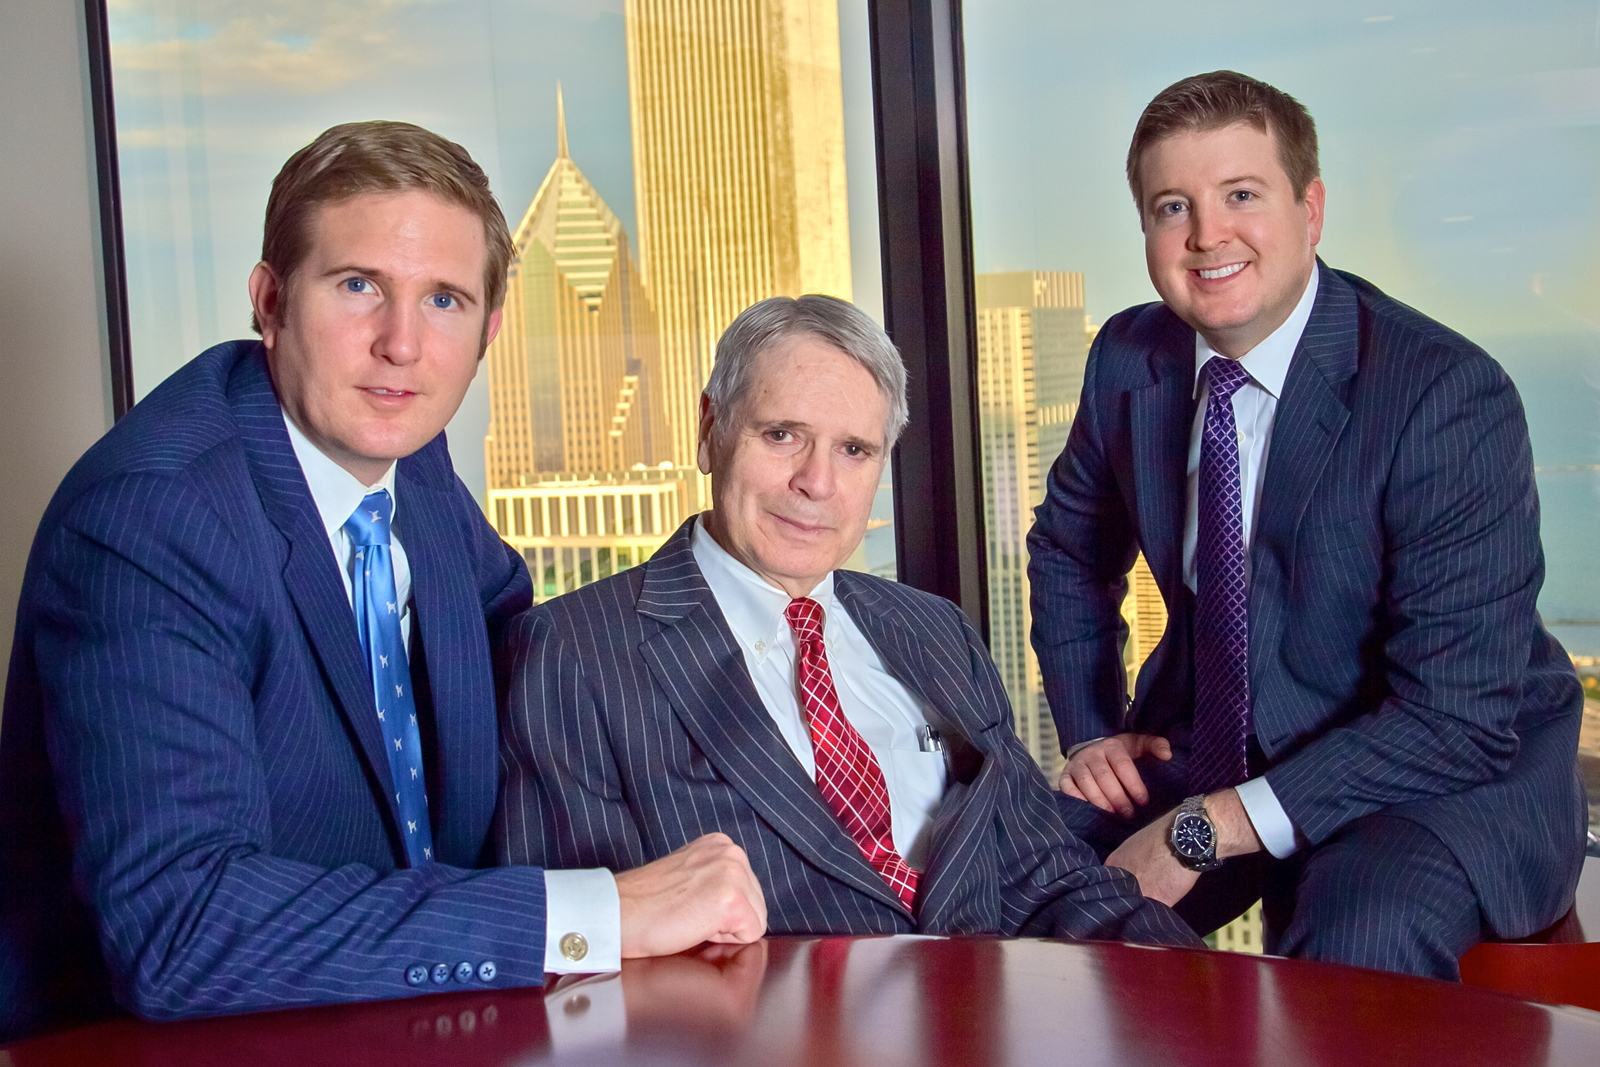 The Gillespie Group | Chicago, IL | Morgan Stanley Wealth